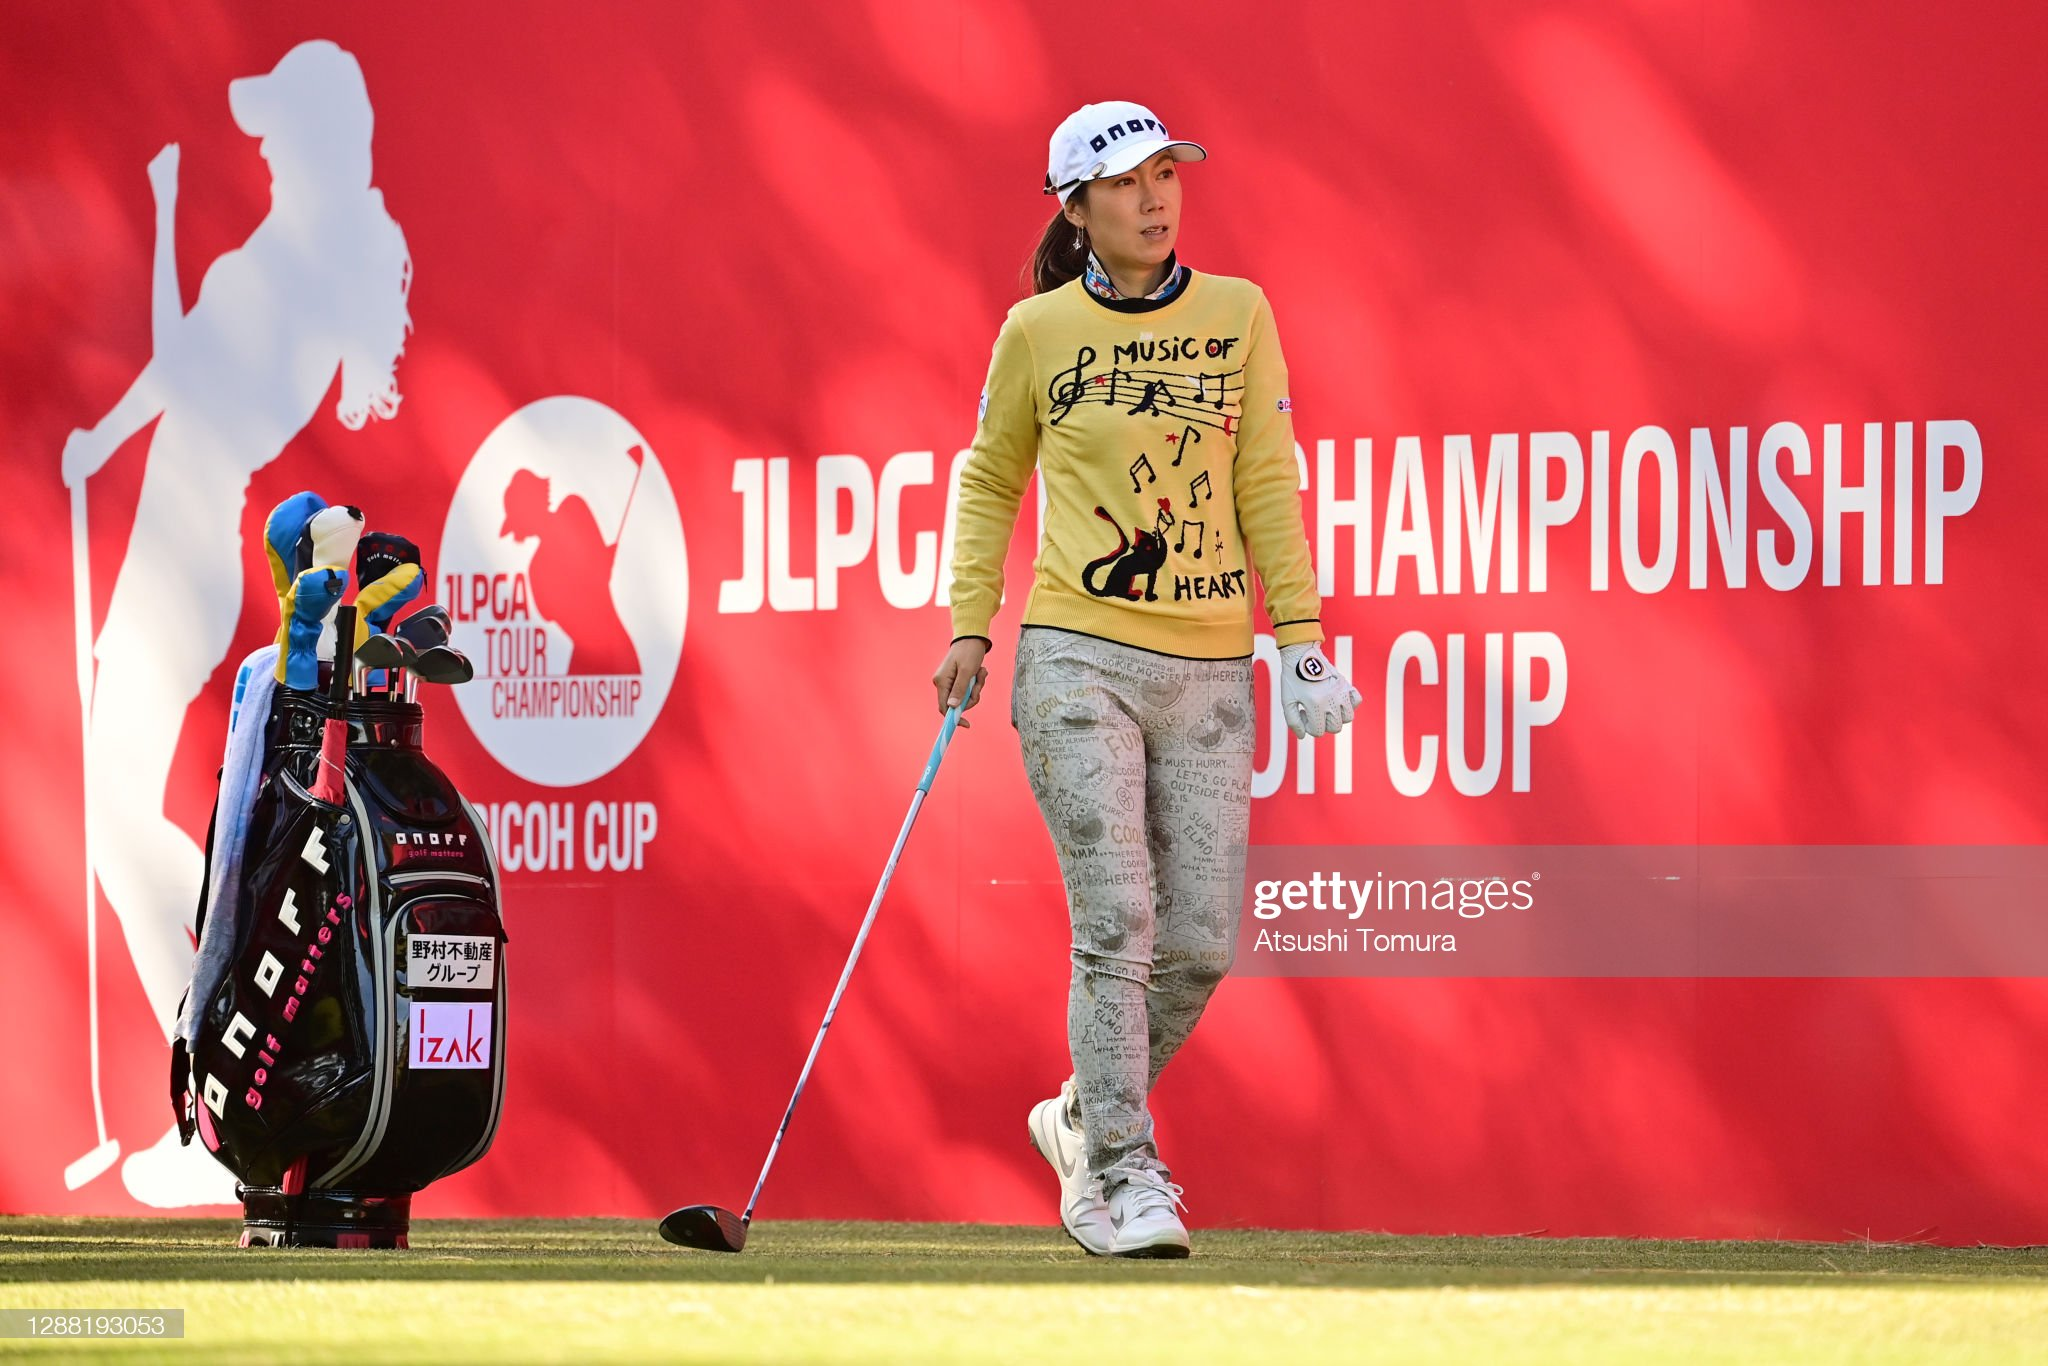 https://media.gettyimages.com/photos/jihee-lee-of-south-korea-is-seen-on-the-1st-tee-during-the-third-of-picture-id1288193053?s=2048x2048